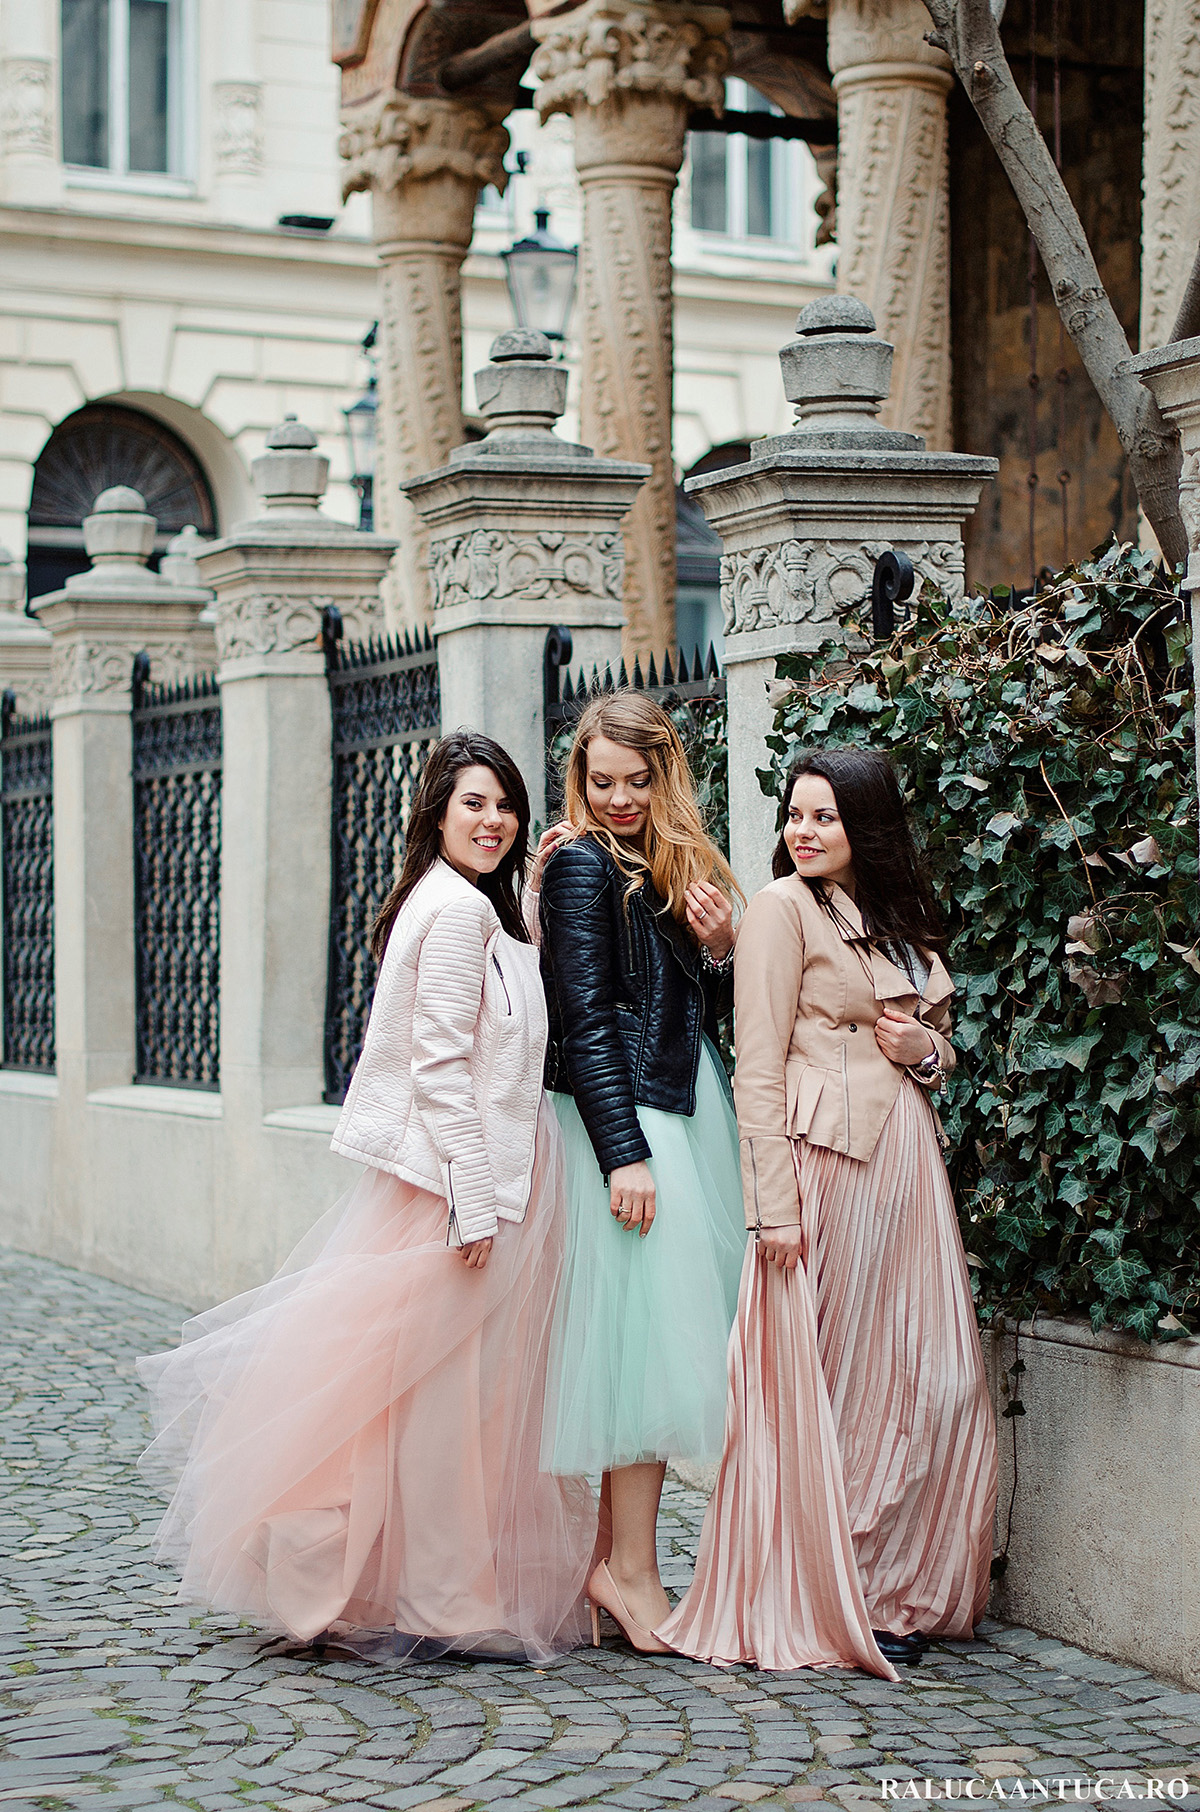 womens-day-march-8-mint-tulle-skirt-pink-tulle-feminine-outfit (6)